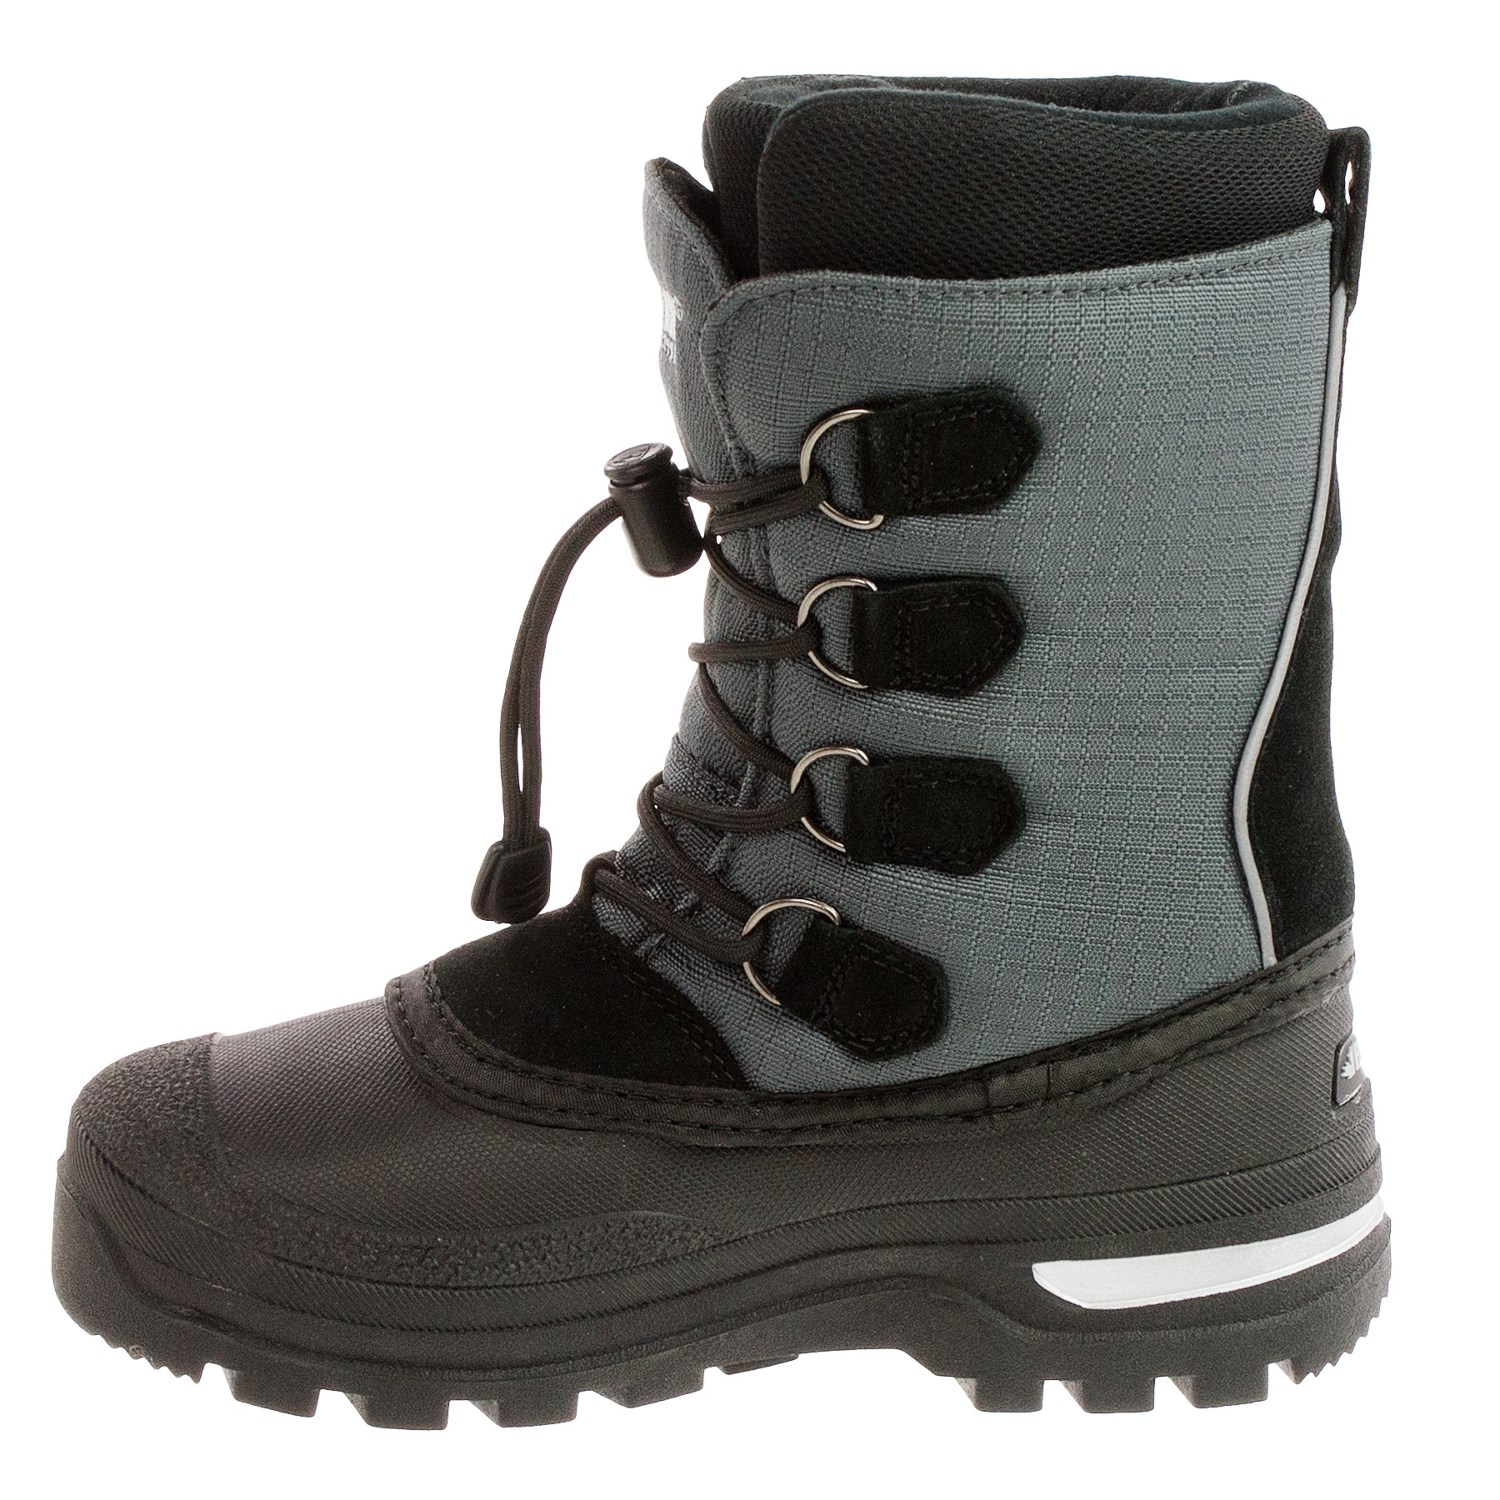 Canadian Snow Boot Brands | Santa Barbara Institute for ...